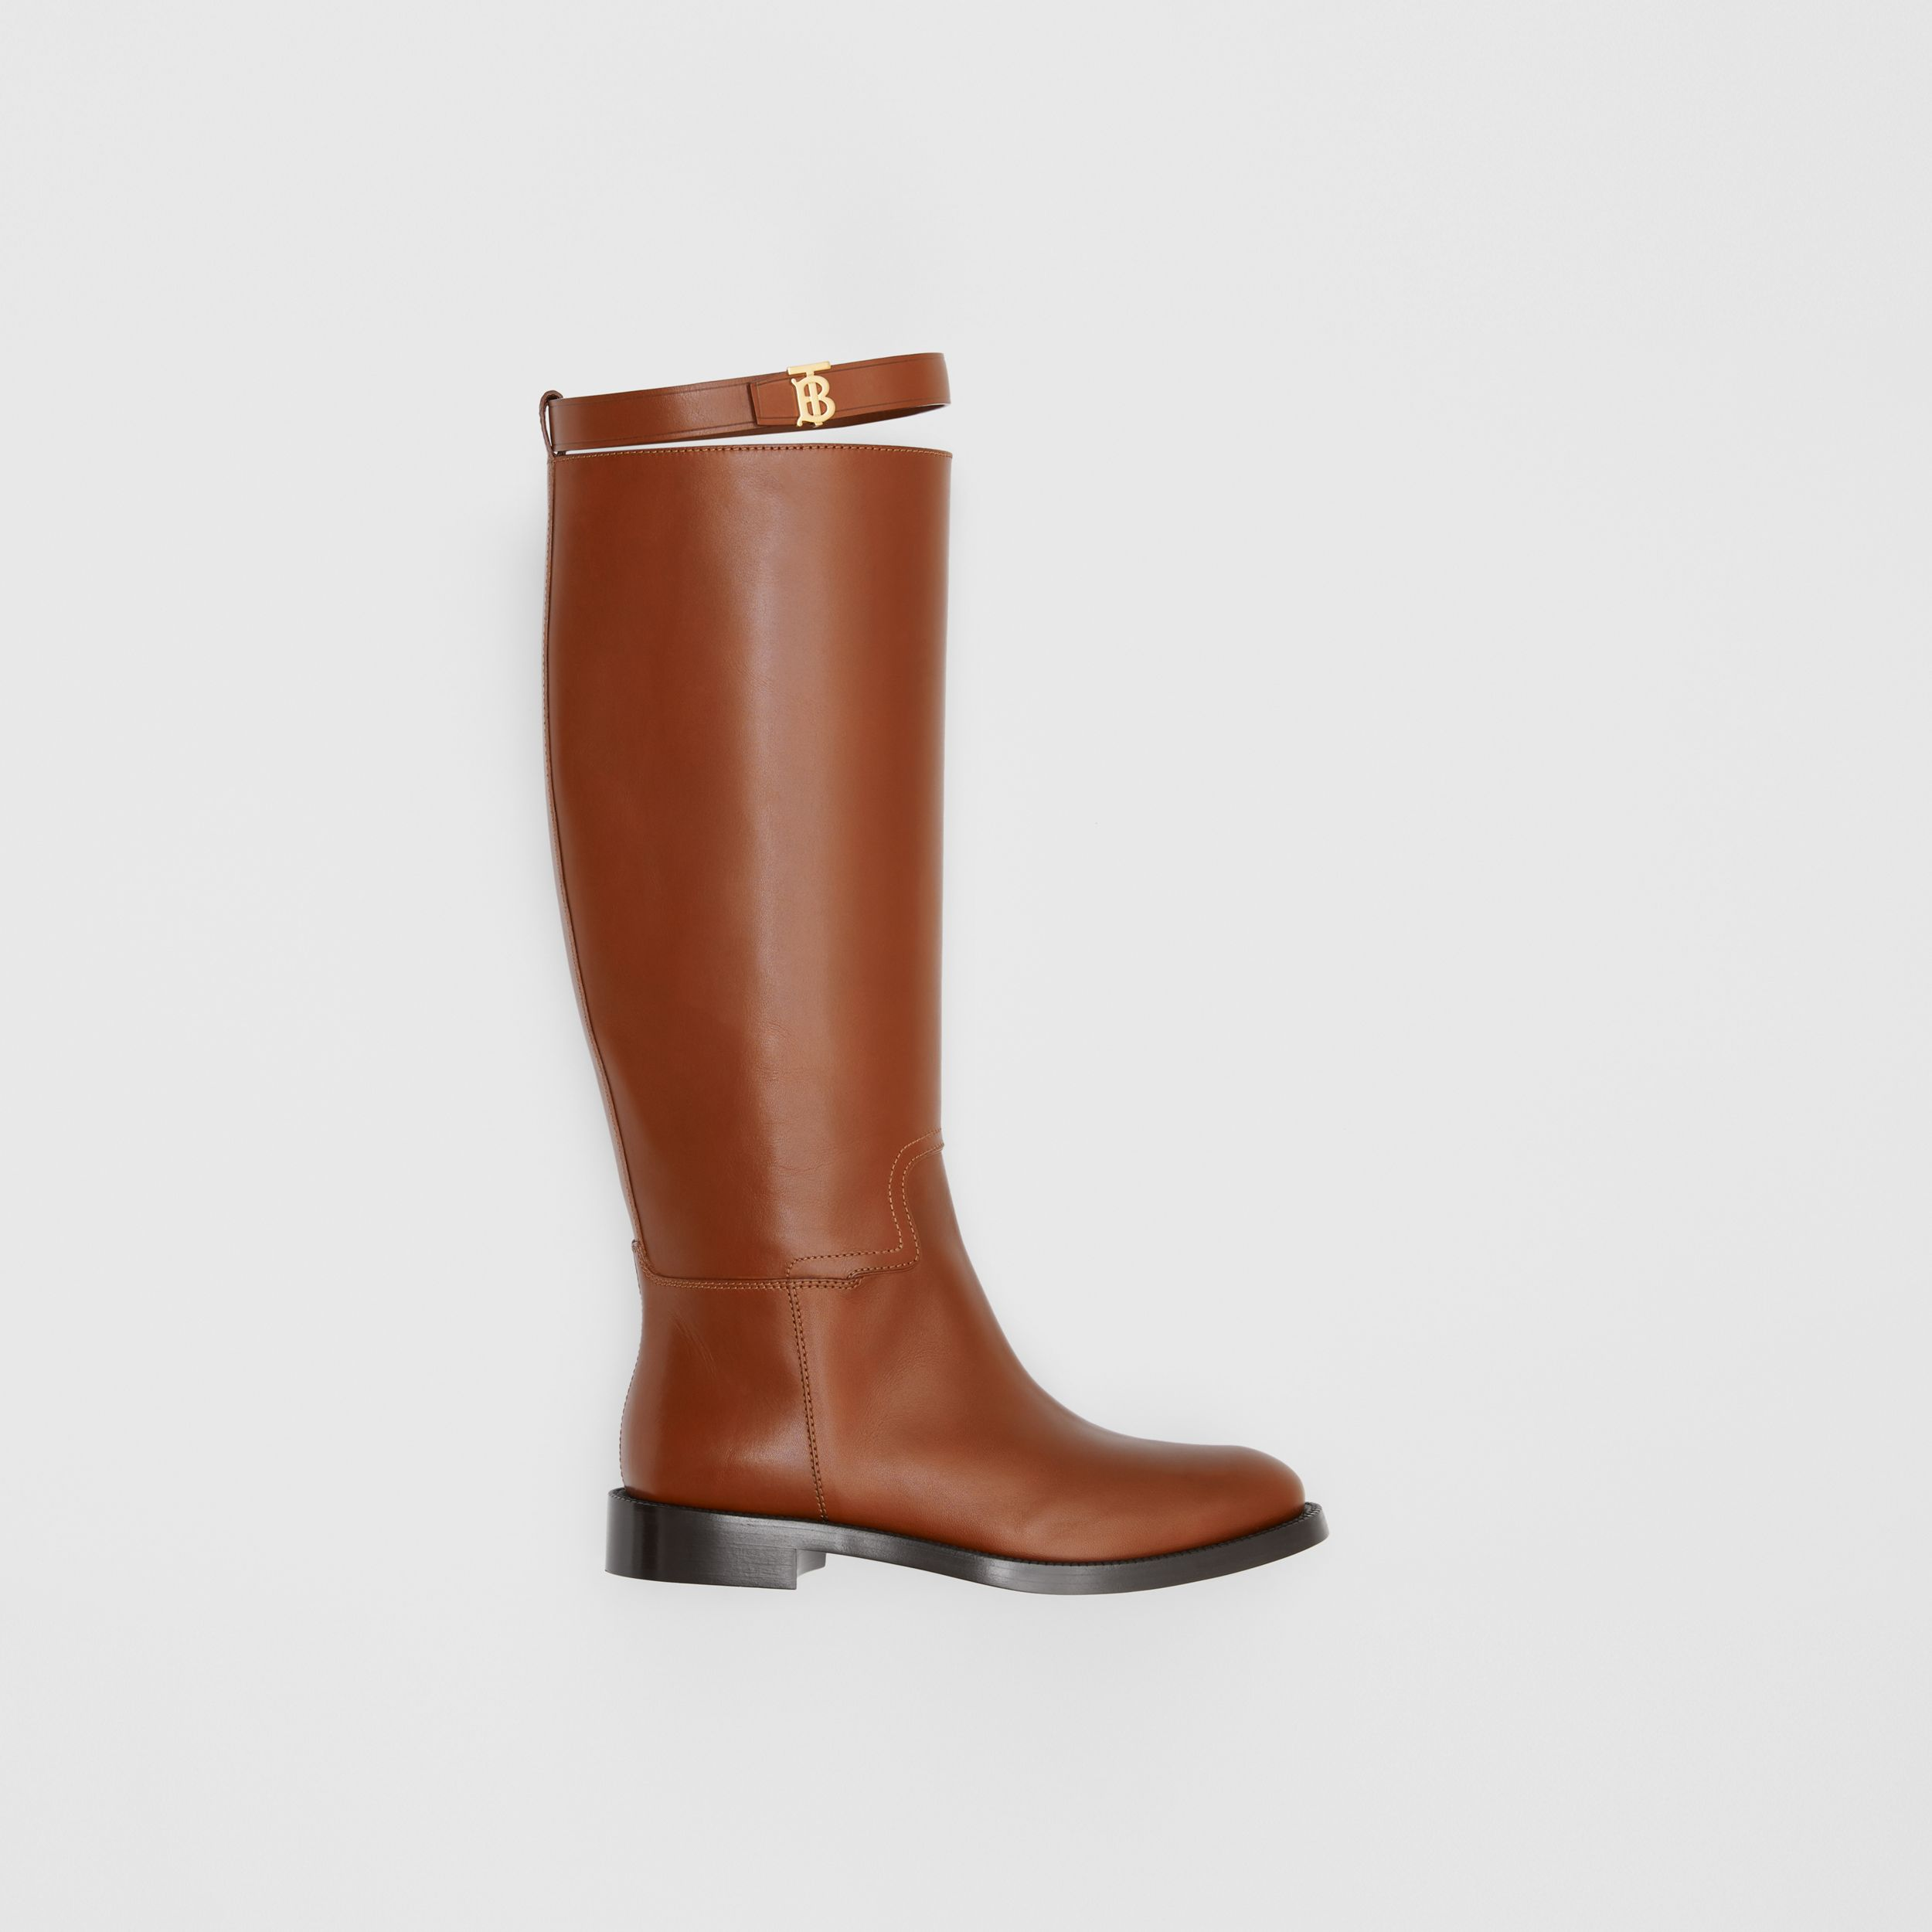 Monogram Motif Leather Knee-high Boots in Tan - Women | Burberry Australia - 1